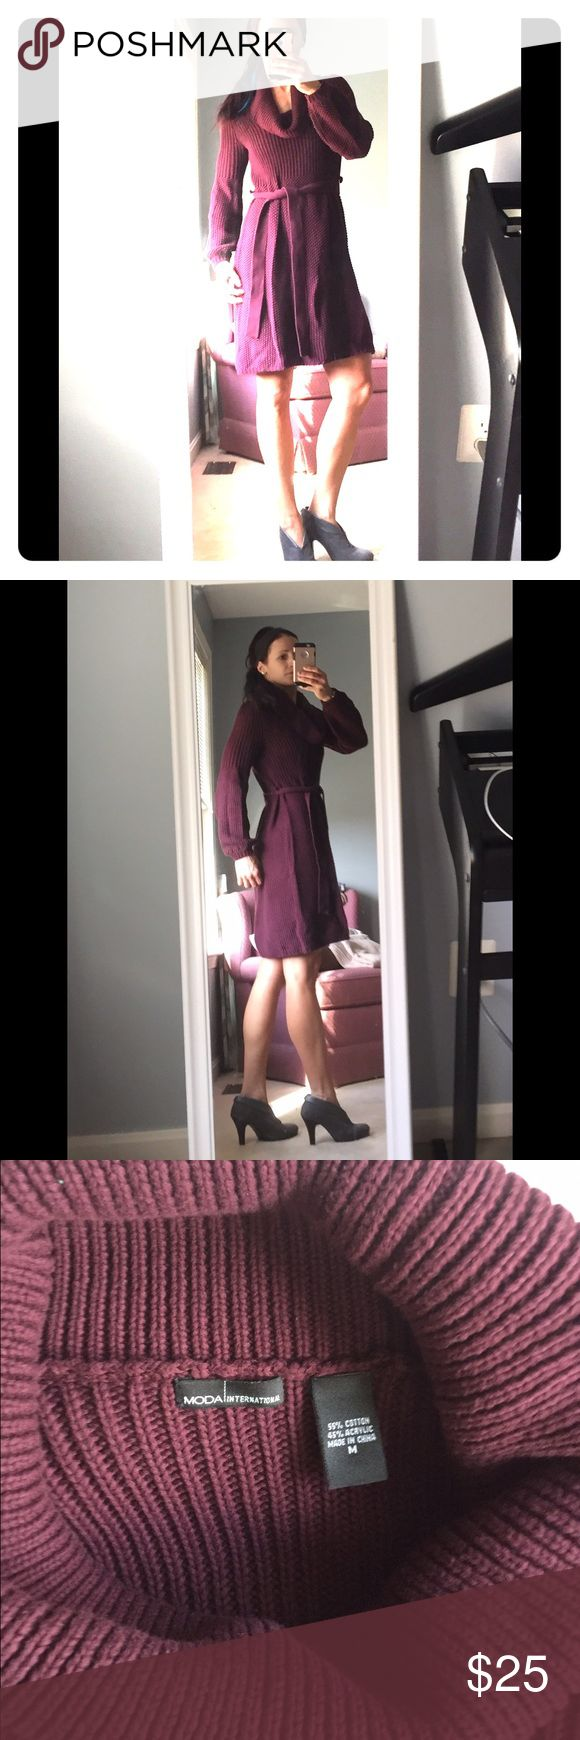 Burgundy sweater dress. Cozy sweater dress with tie around waist and a cowl neck.  The sleeves have a slight bell shape to them. Very warm!  Would look great with knee high boots! The brand is Moda bought from Victoria's Secret. Victoria's Secret Dresses Long Sleeve